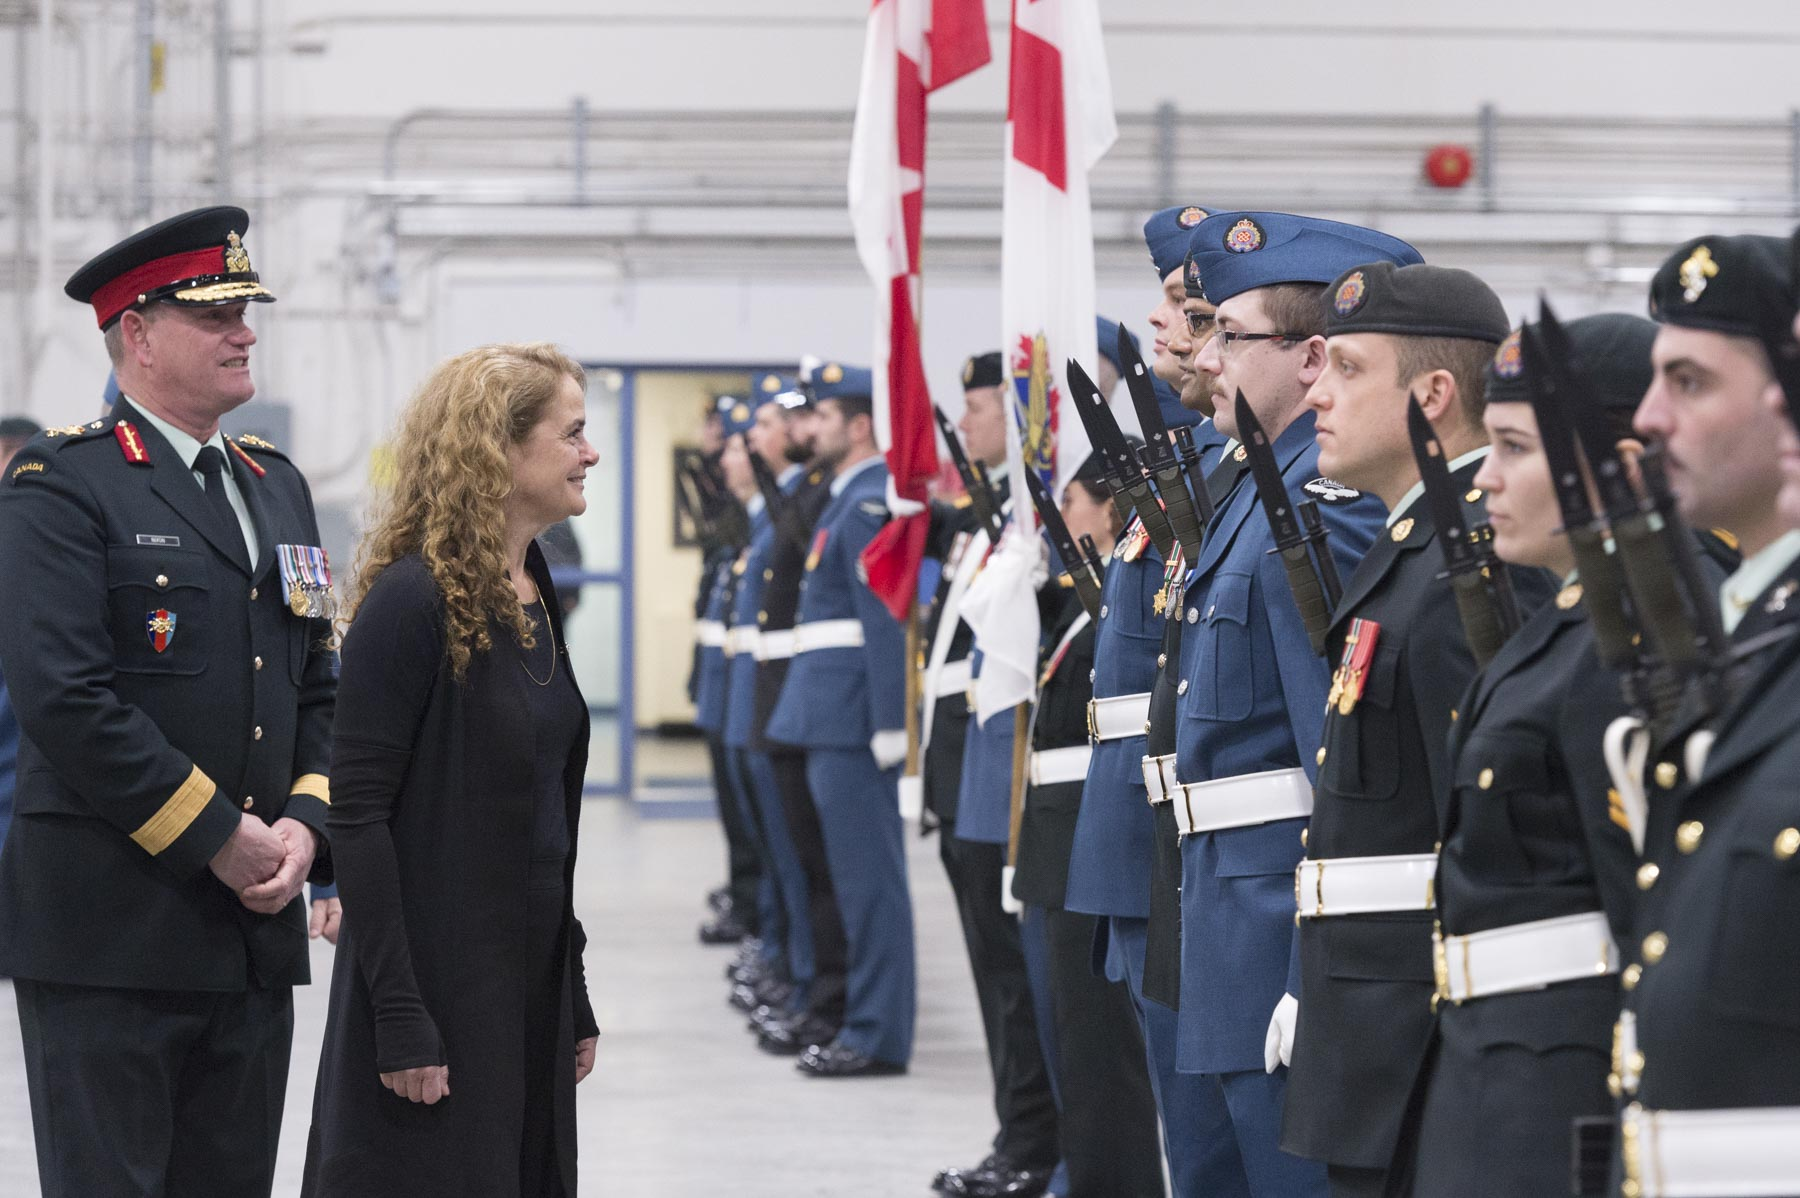 The Governor General was also welcomed by a guard of honour.